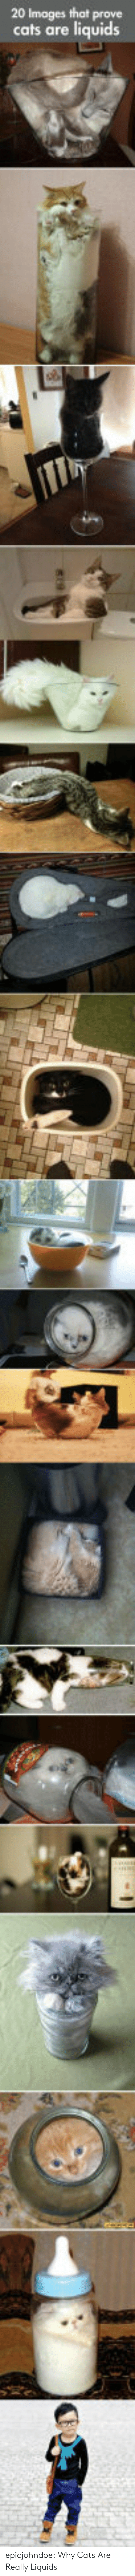 Cats Are: 20 Images that prove  cats are liquids epicjohndoe:  Why Cats Are Really Liquids